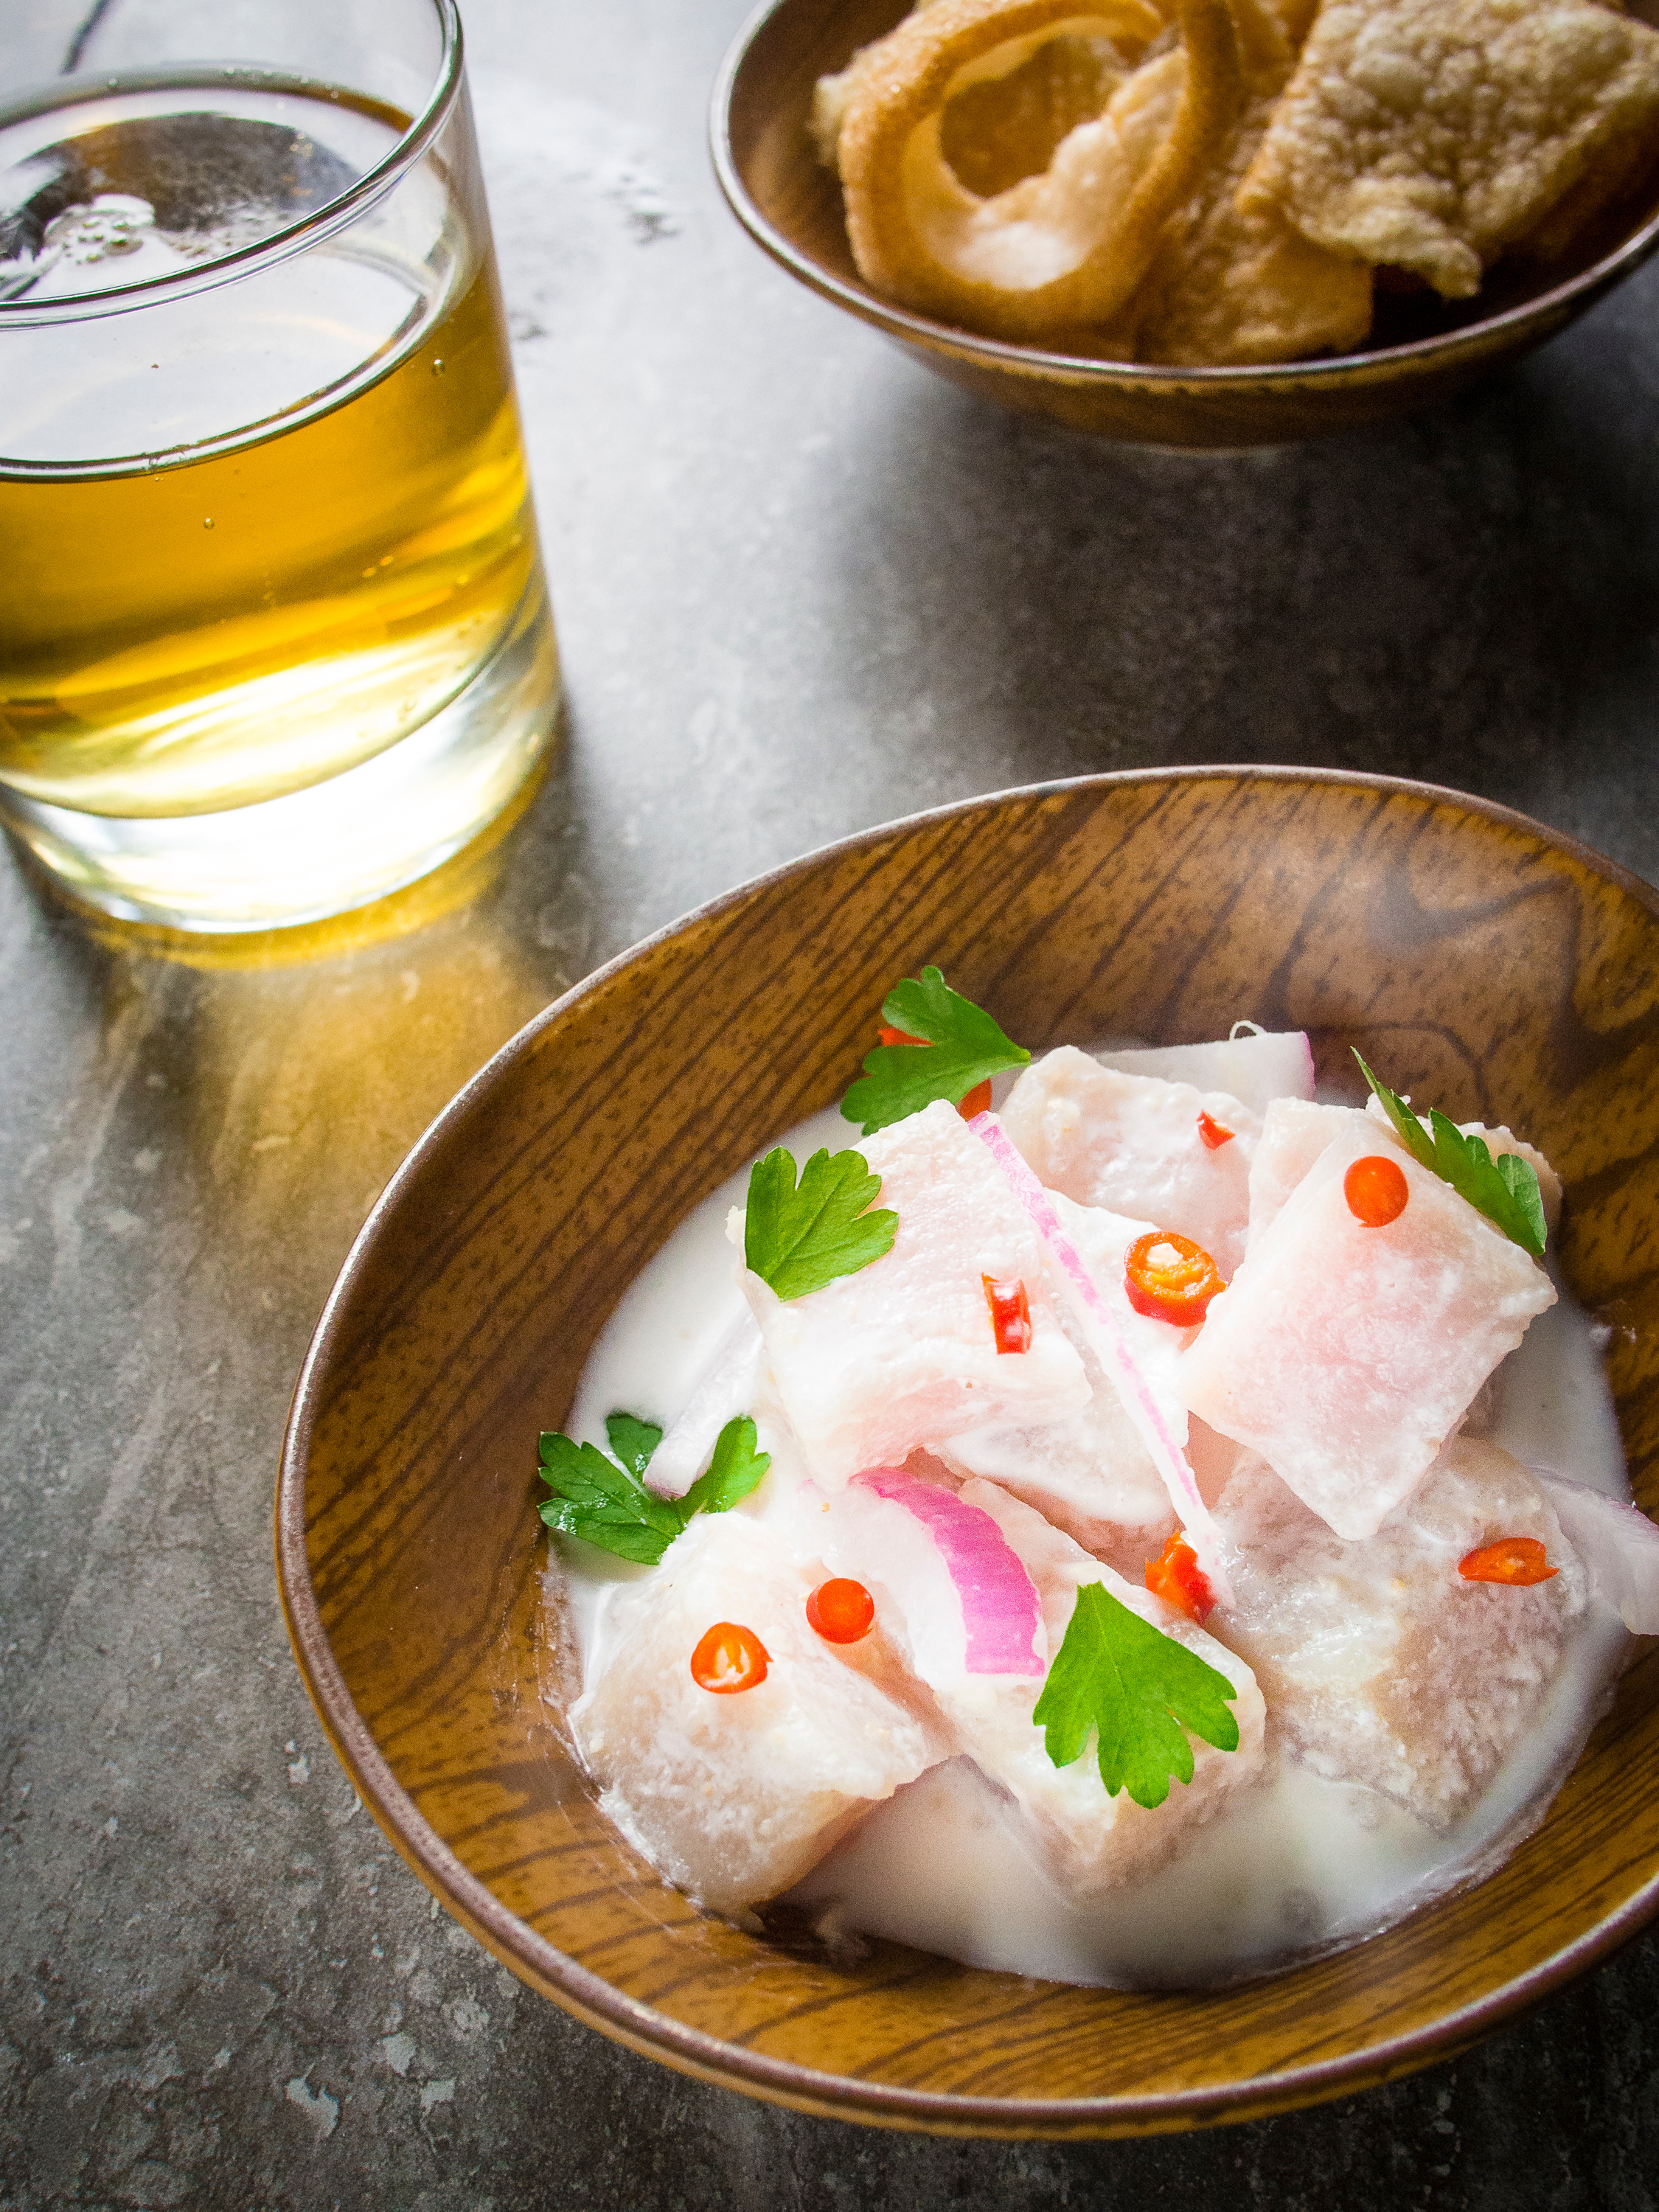 If you like poke and ceviche try this easy filipino kinilaw recipe easy filipino kinilaw recipe perfect if you like ceviche and poke with only 5 ingredients forumfinder Gallery